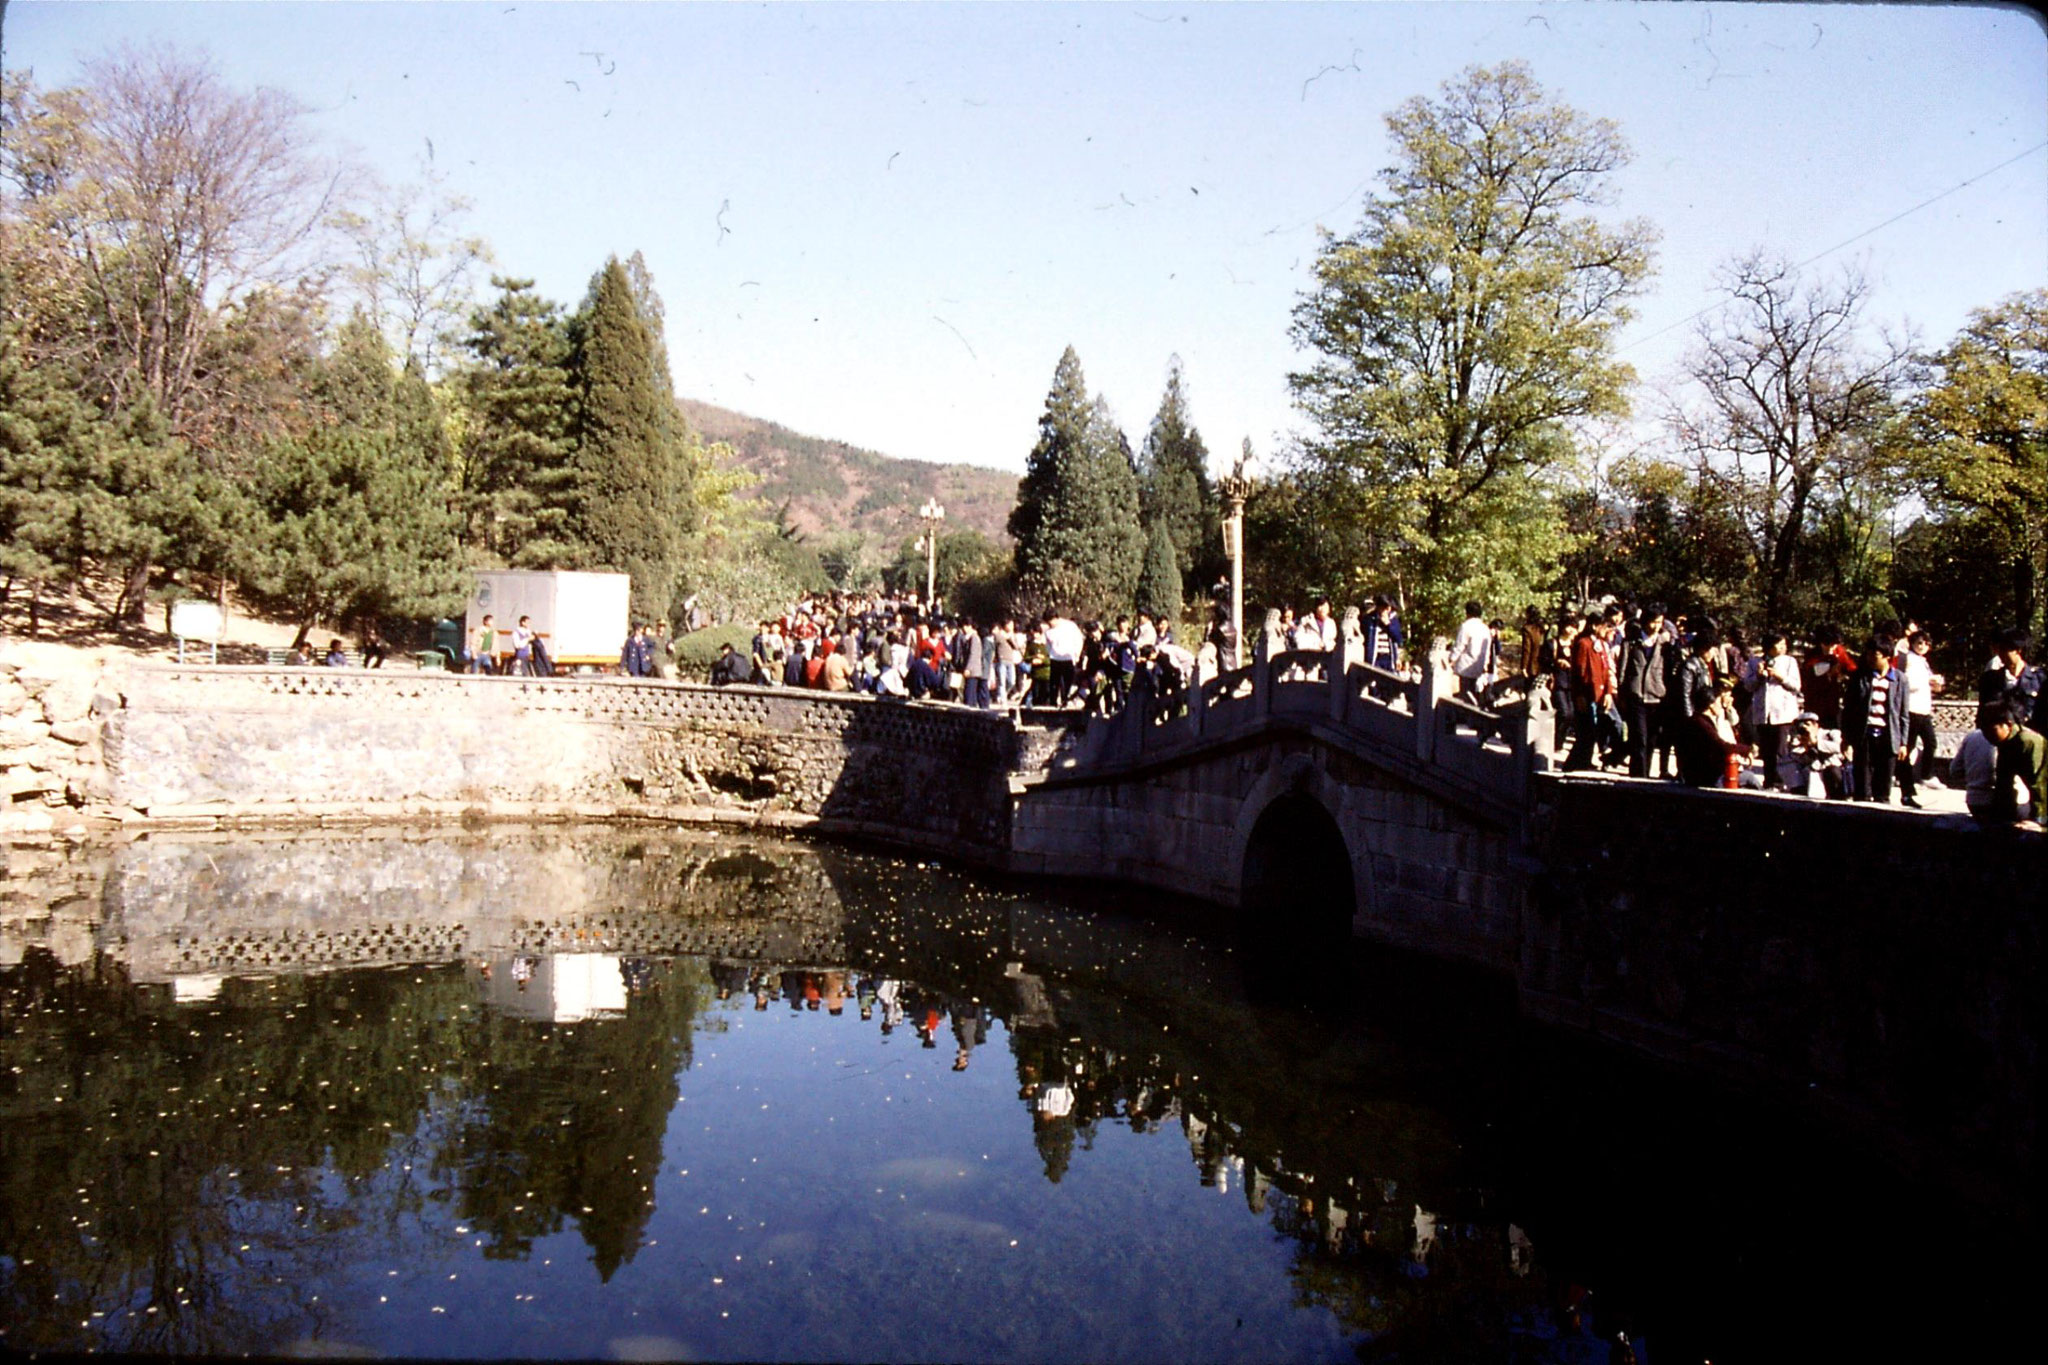 6/11/1988: 28: outing to Xiangshan